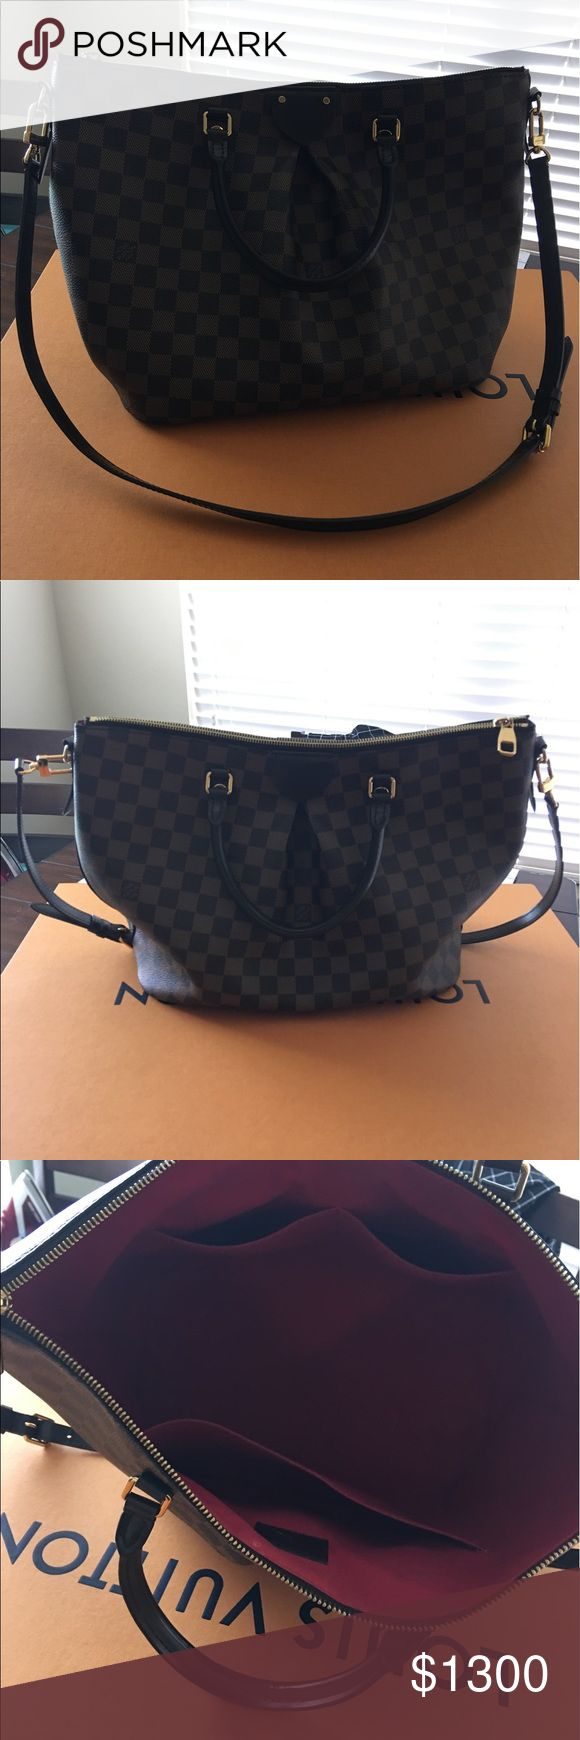 SEINA MM LOUIS VUTTION Perfect condition, brown checkered. Has long strap. Louis Vuitton Bags Shoulder Bags